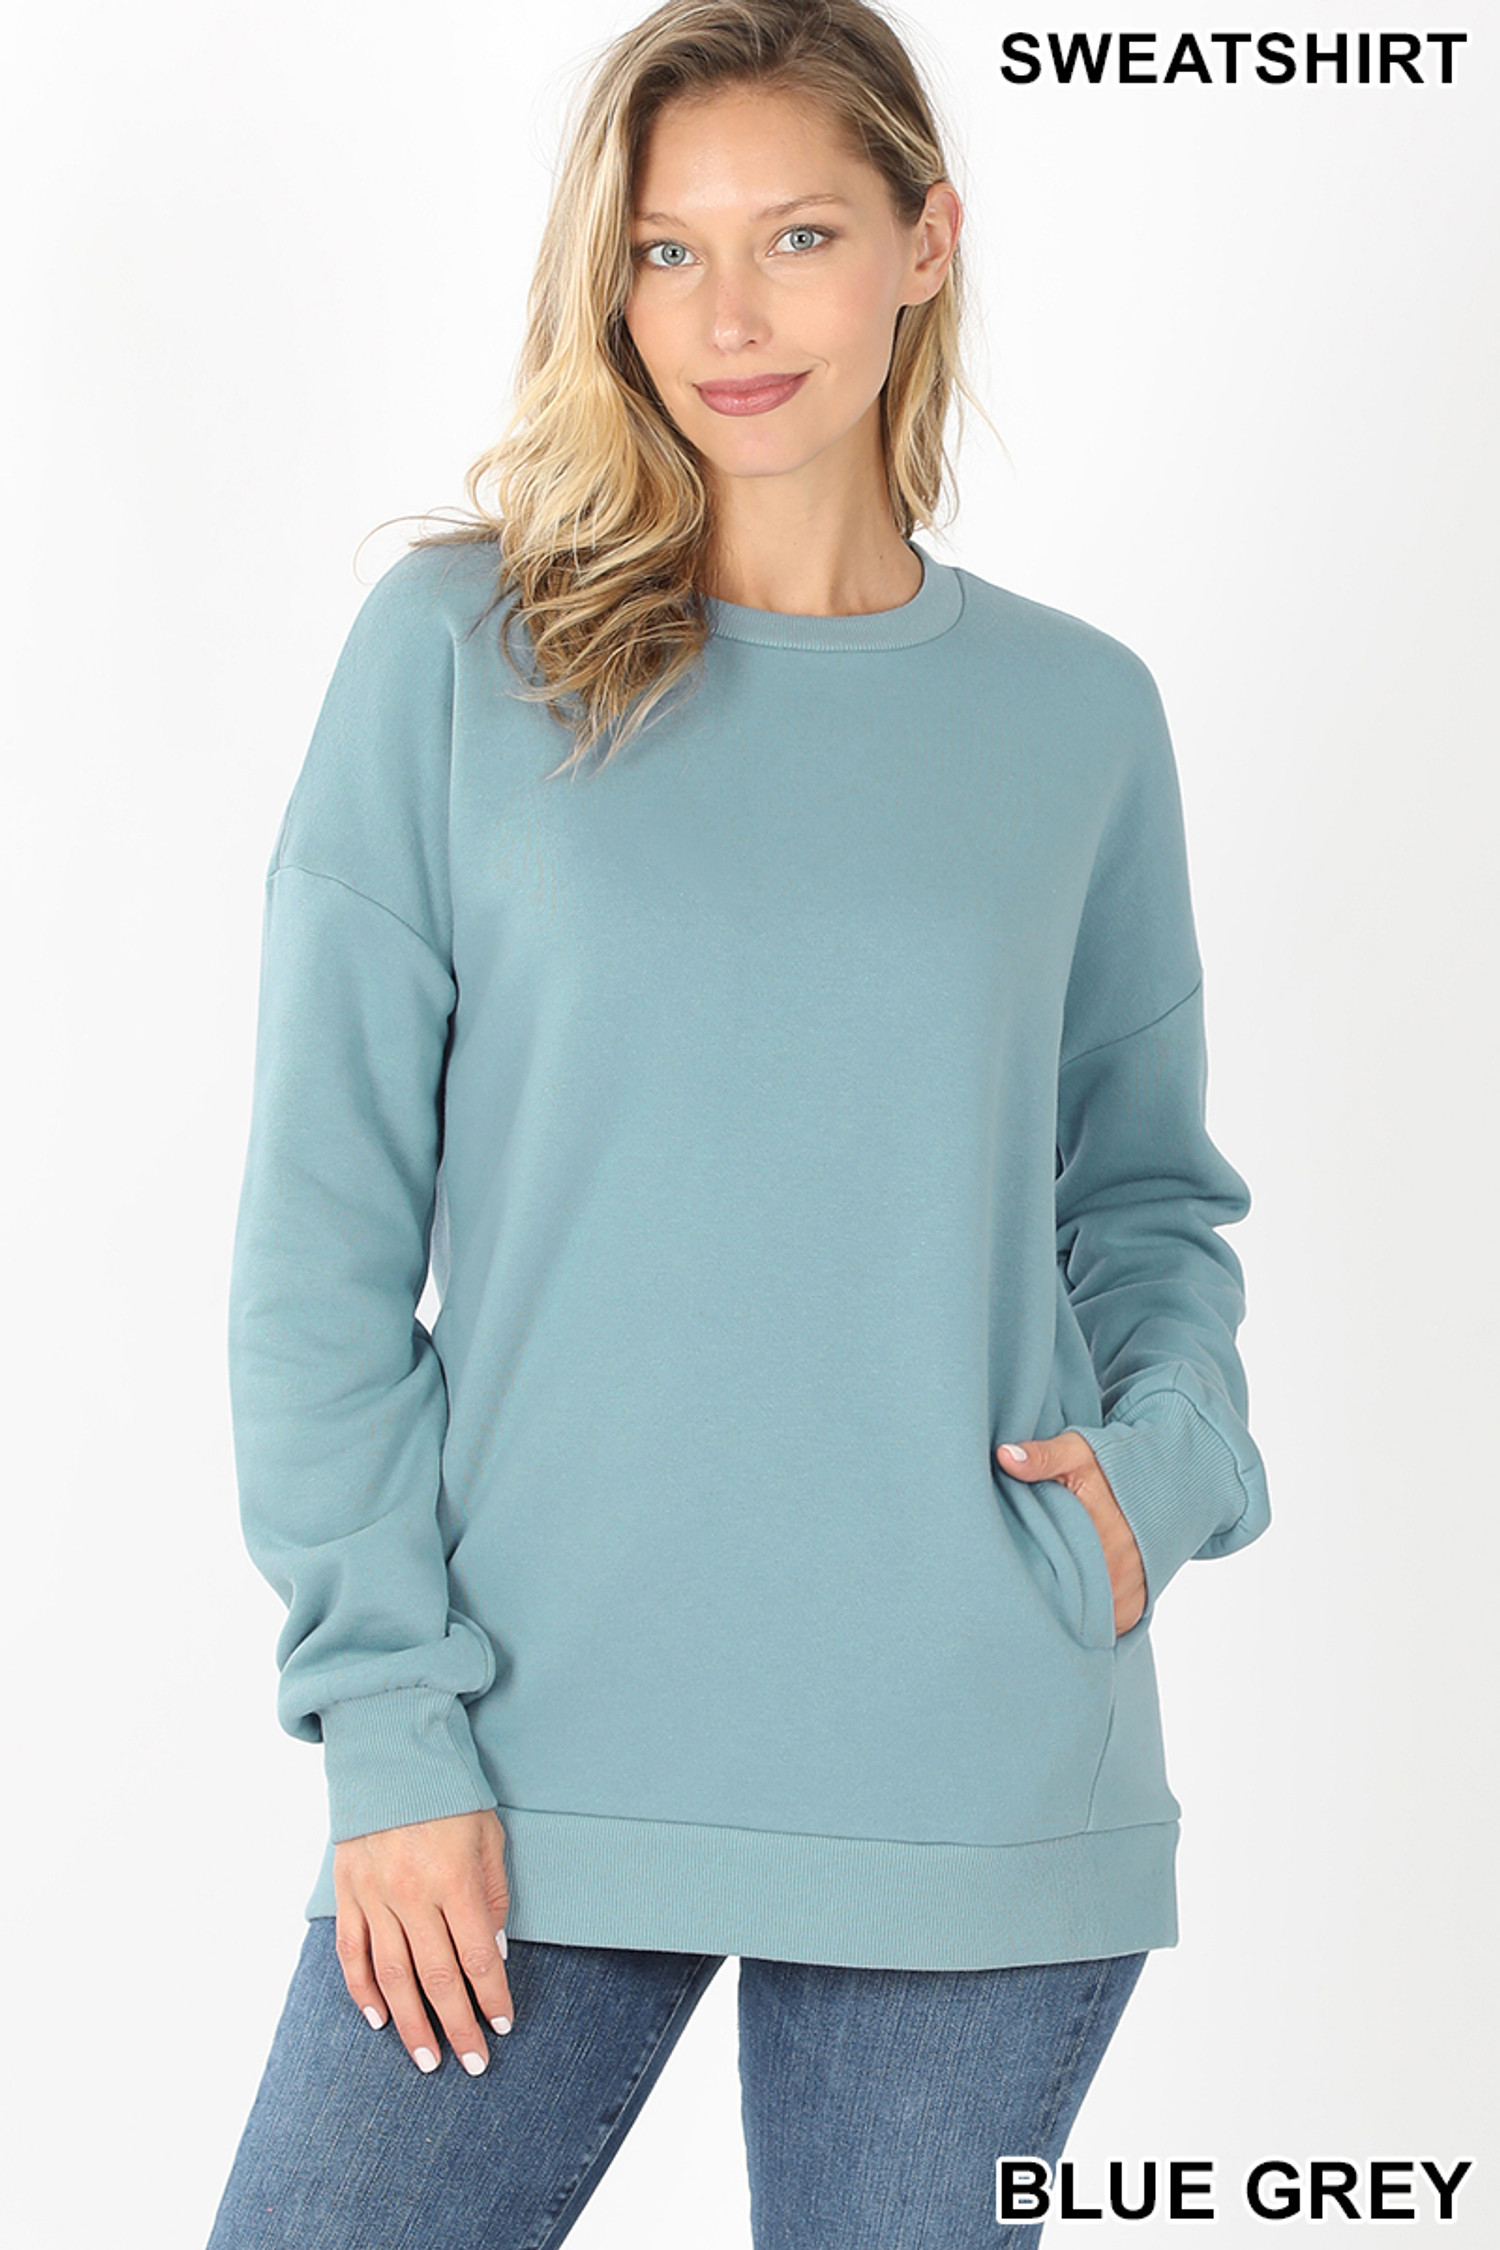 Front image of Blue Grey Round Crew Neck Sweatshirt with Side Pockets